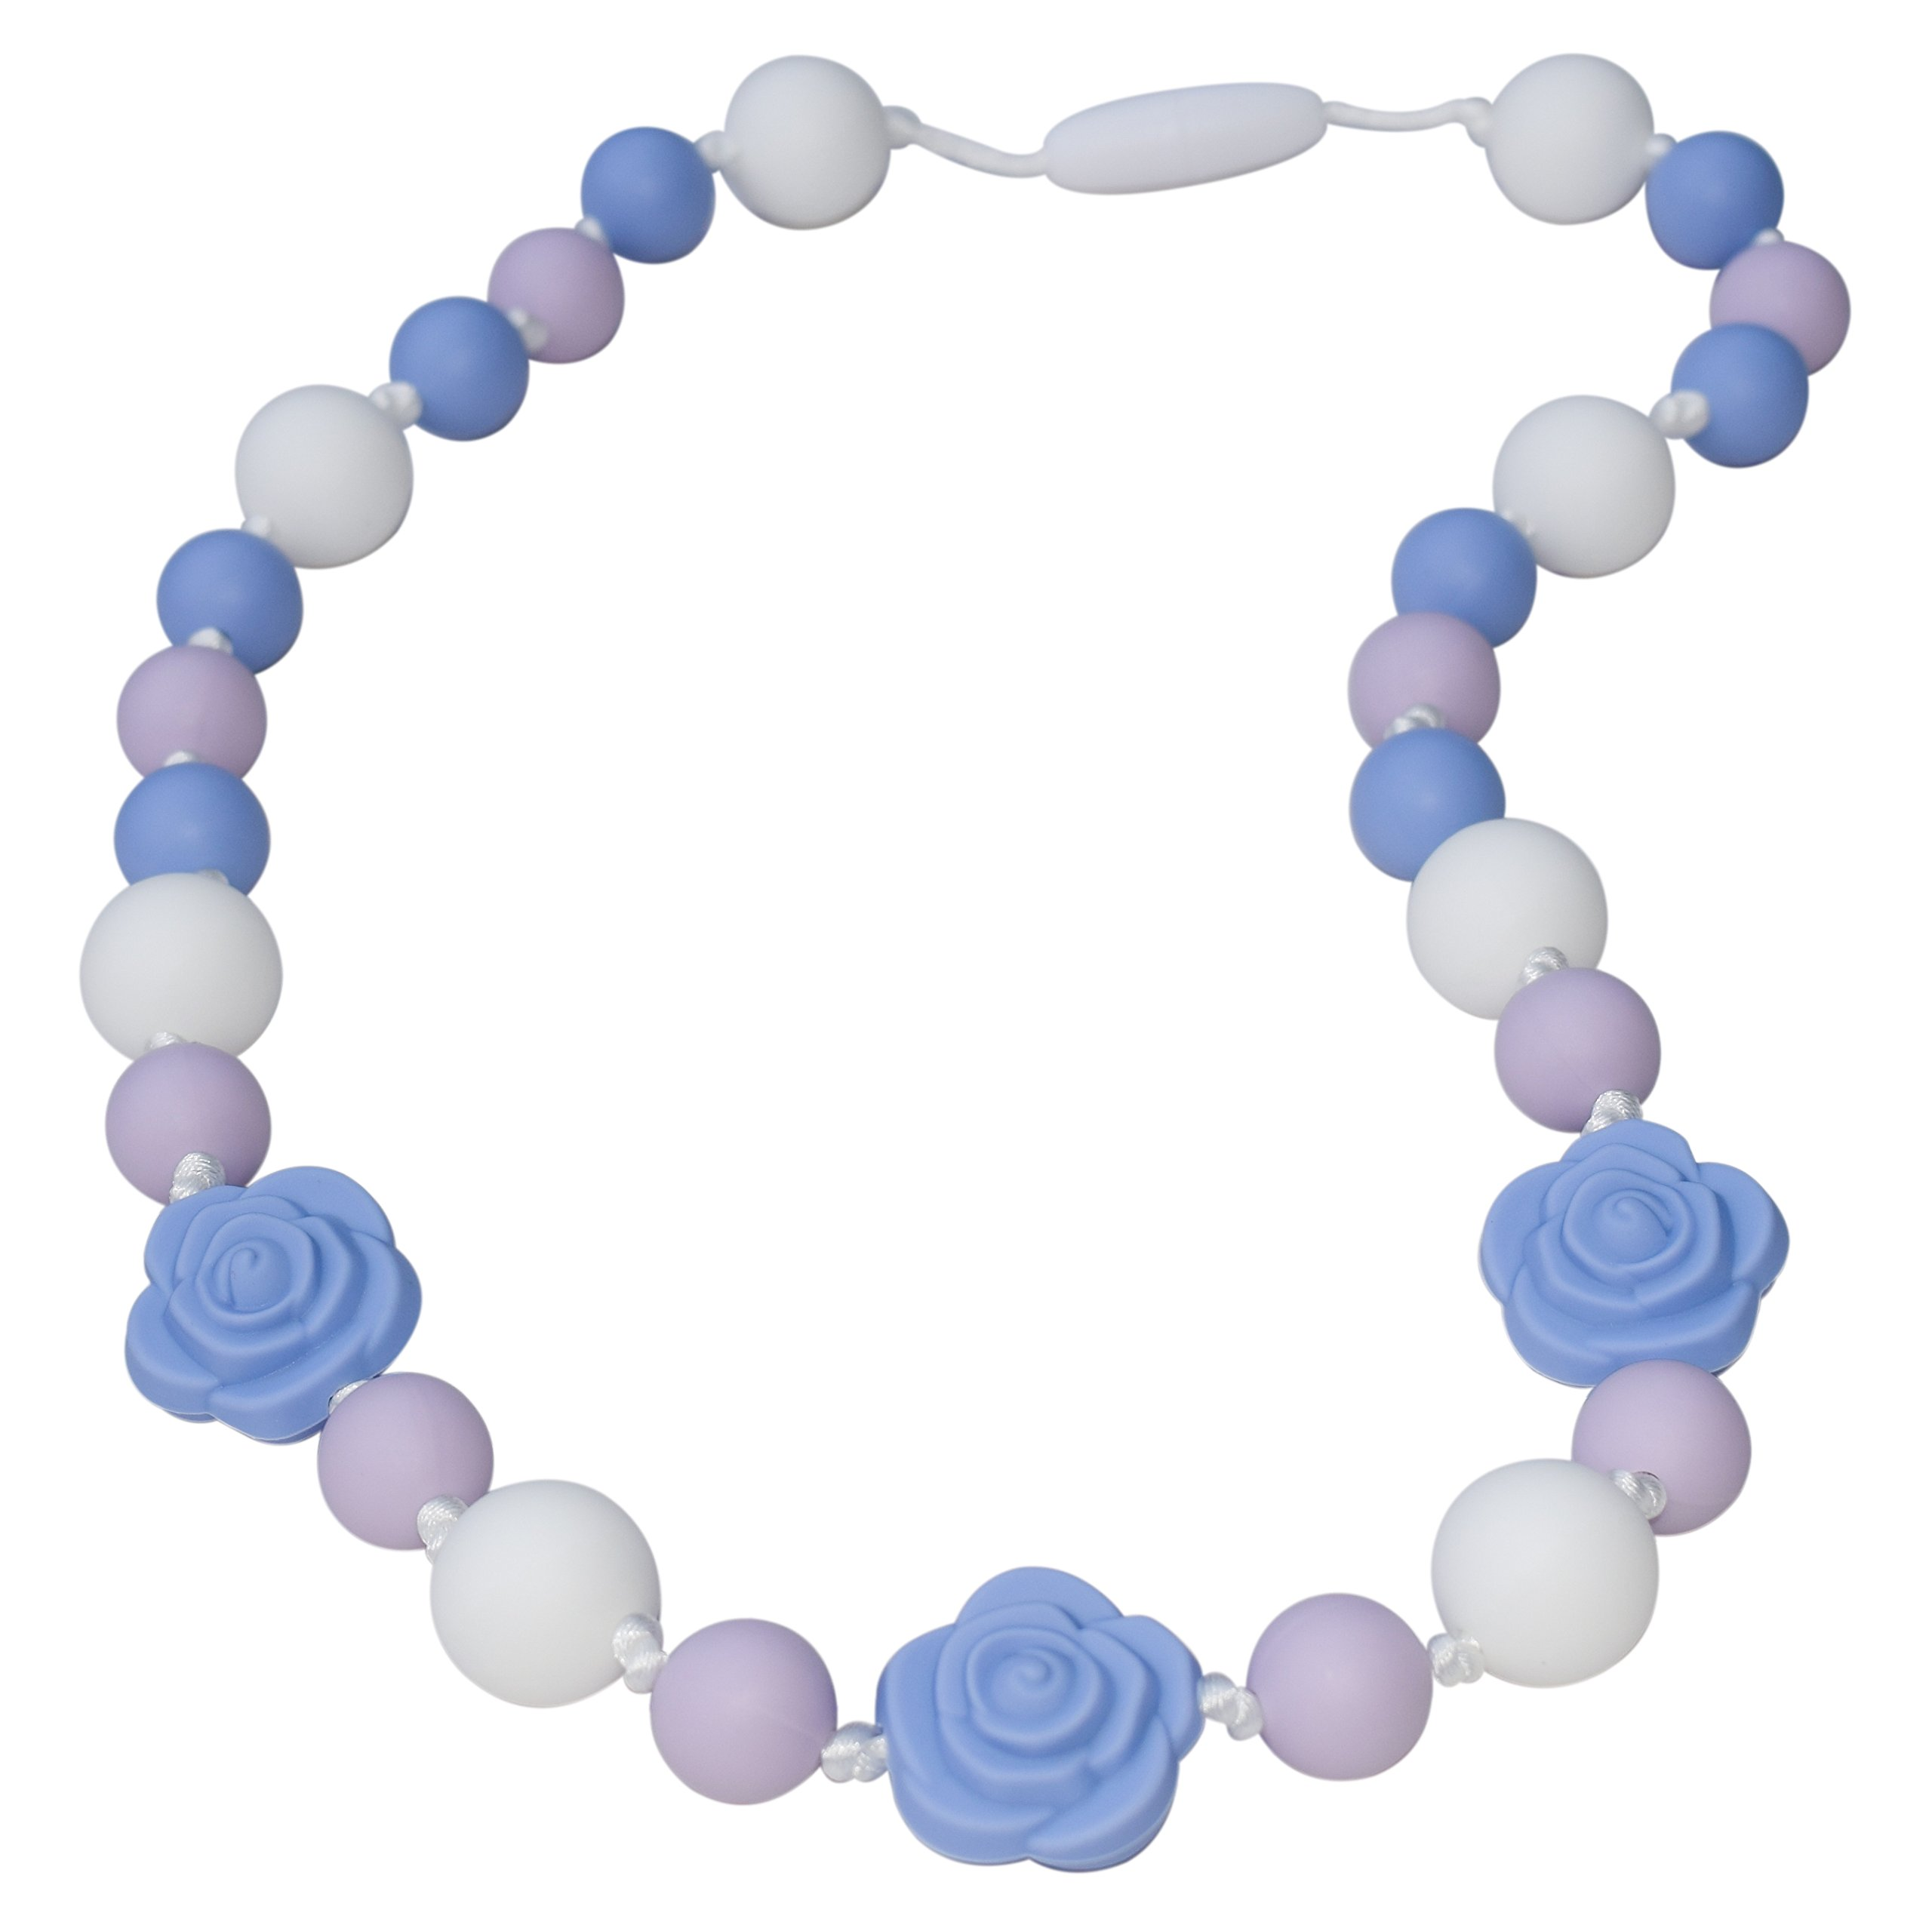 Sensory Oral Motor Aide Chewelry Necklace - Chewy Jewelry for Sensory-Focused Kids with Autism or Special Needs - Calms Kids and Reduces Biting/Chewing - Roses (Lavender/White/Blue)